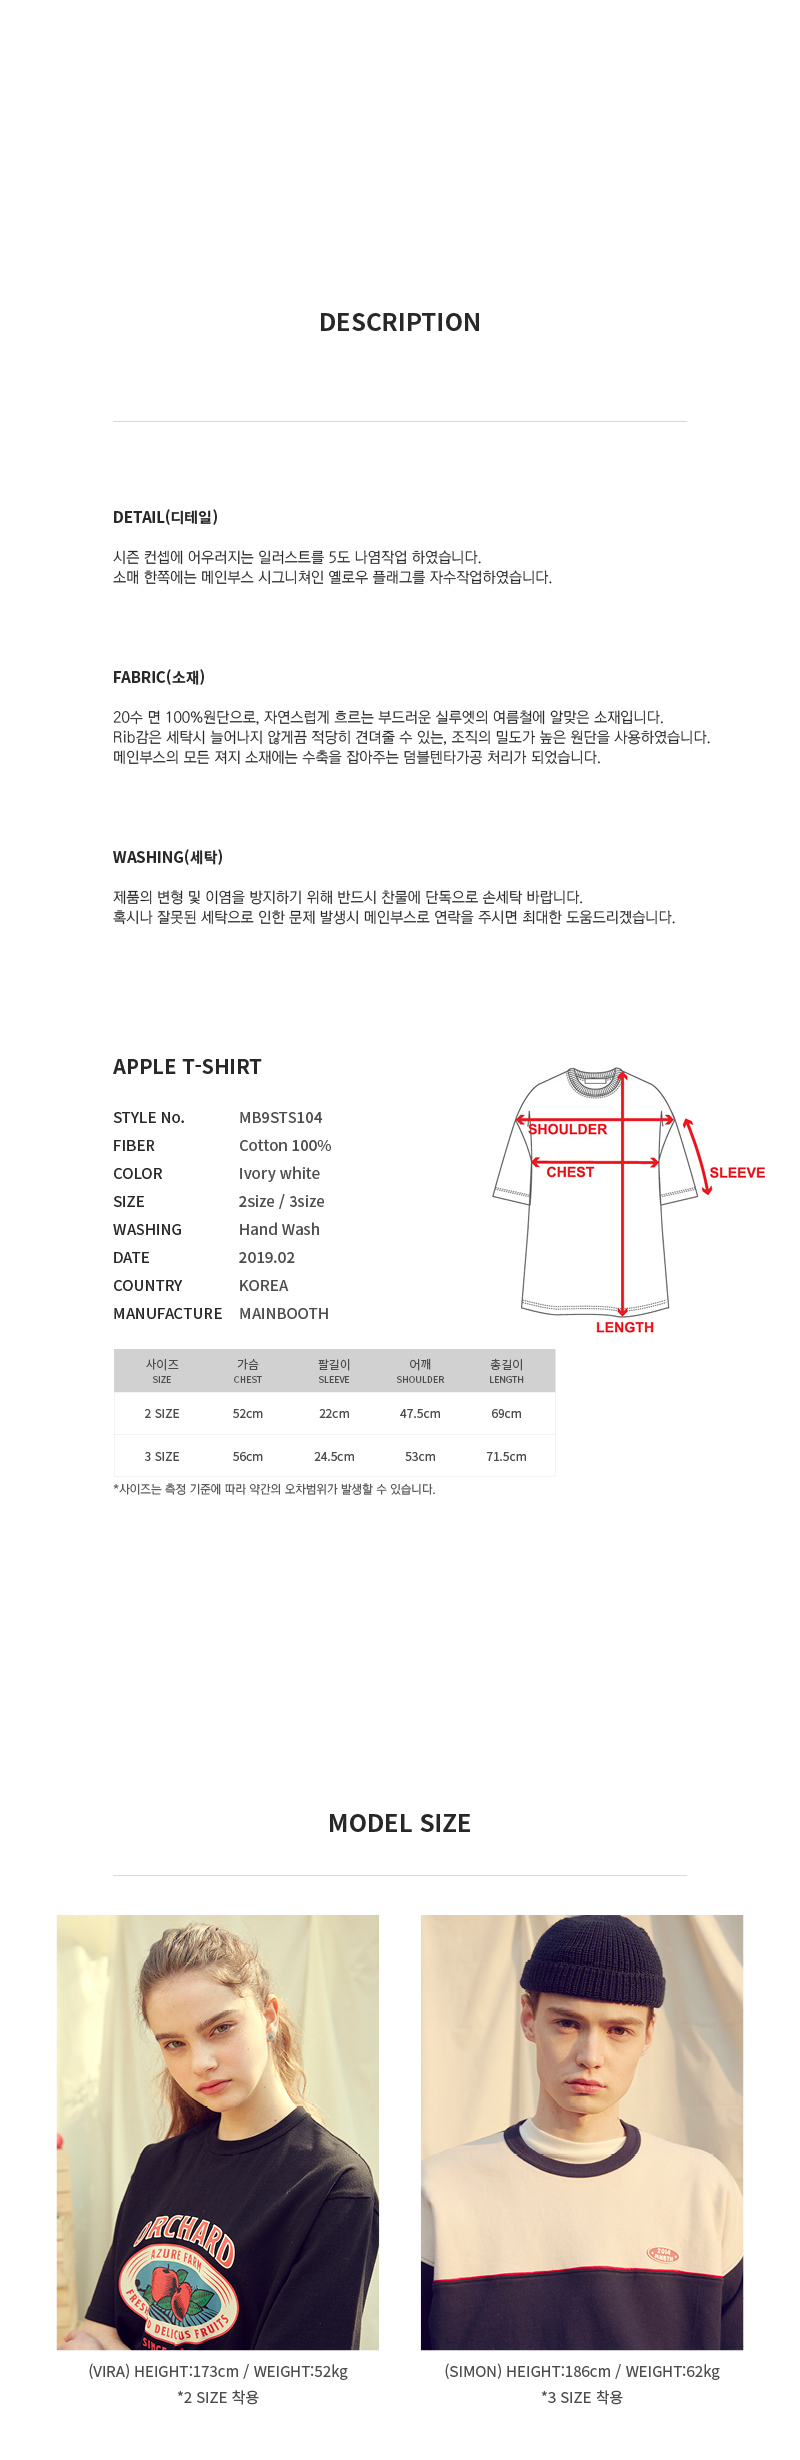 메인부스(MAINBOOTH) Apple T-shirt(IVORY WHITE)